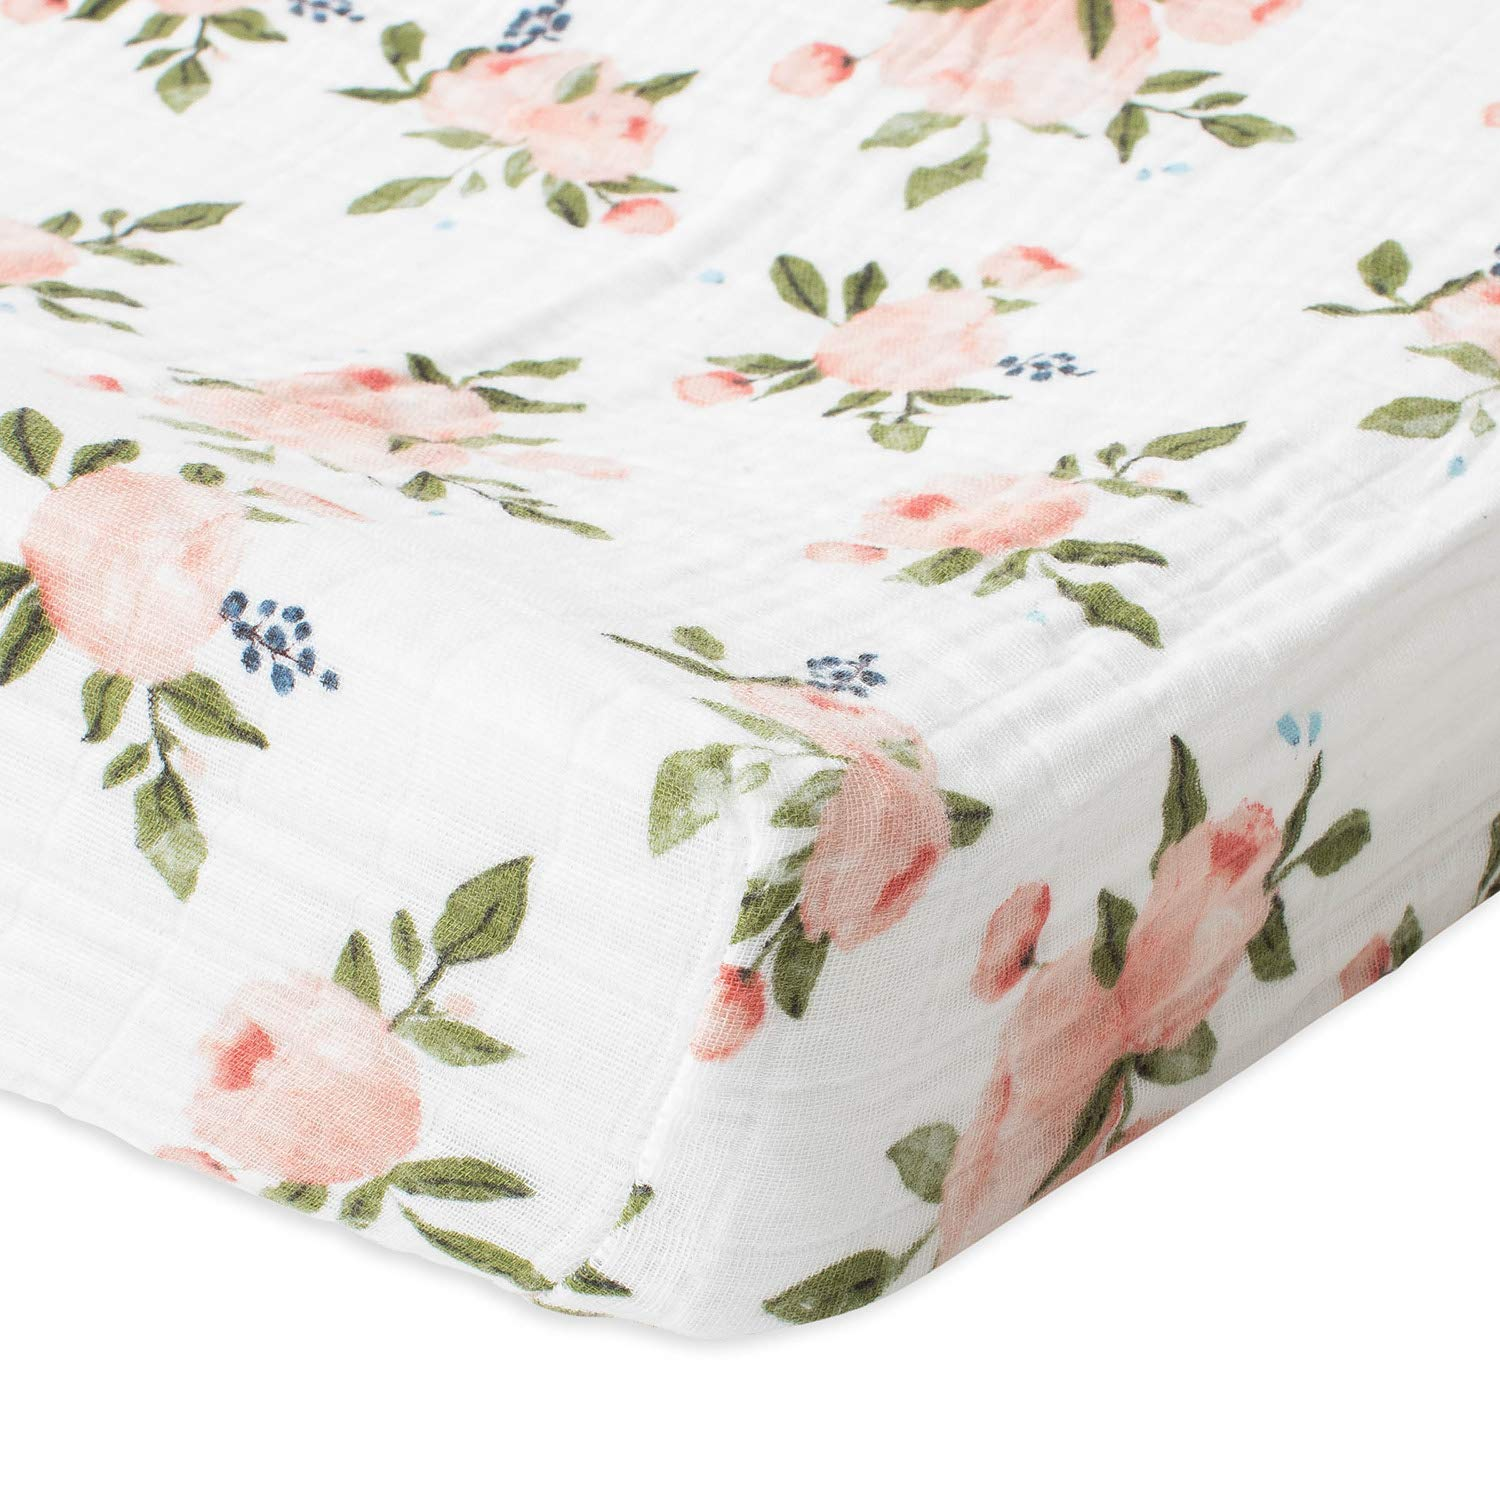 Little Unicorn Cotton Muslin Changing Pad Cover - Watercolor Roses by Little Unicorn